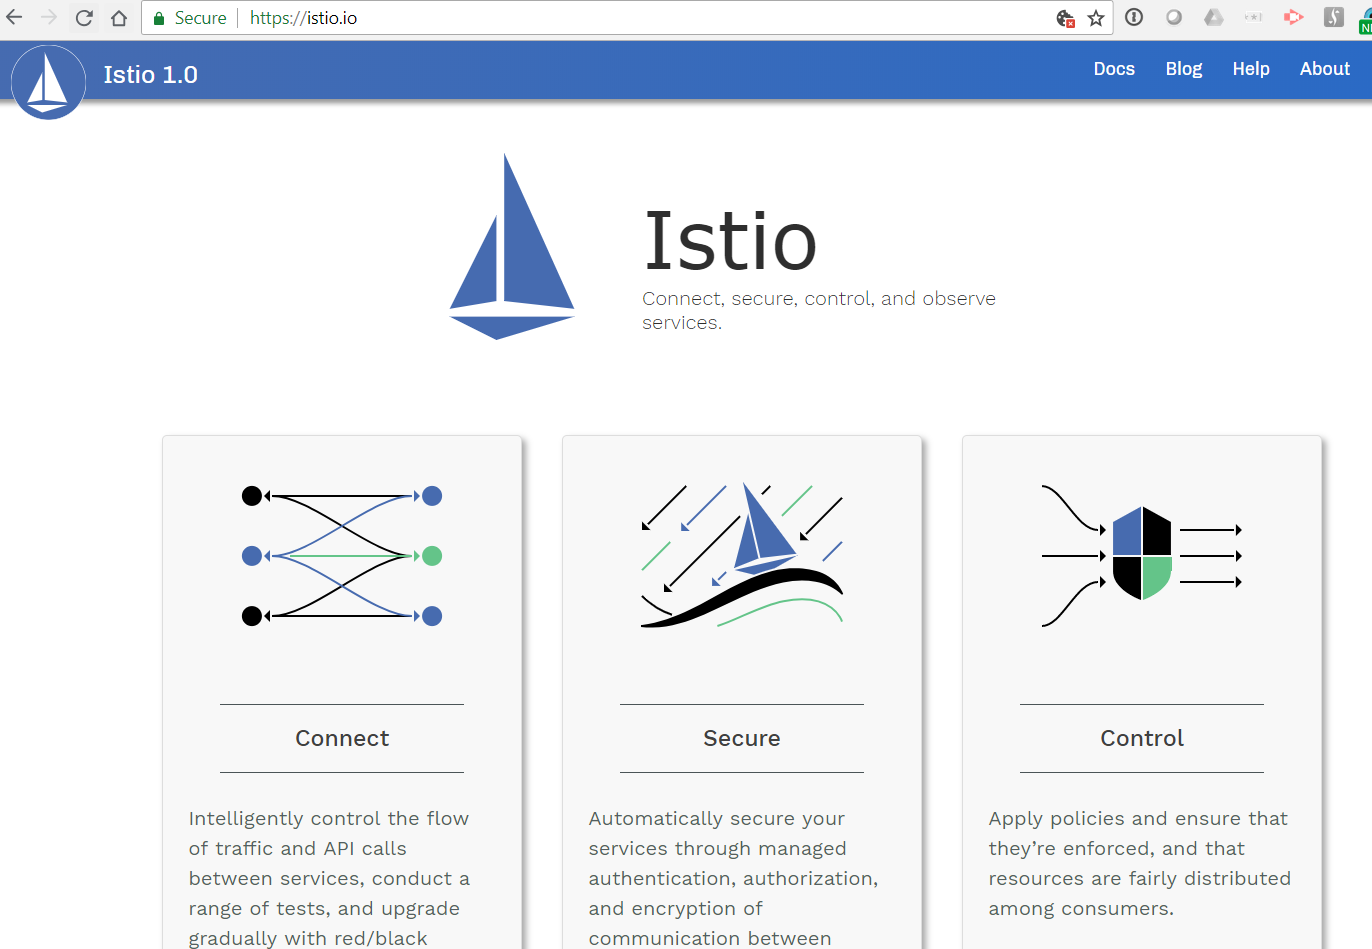 Converge! Network Digest: Open source Istio cloud service